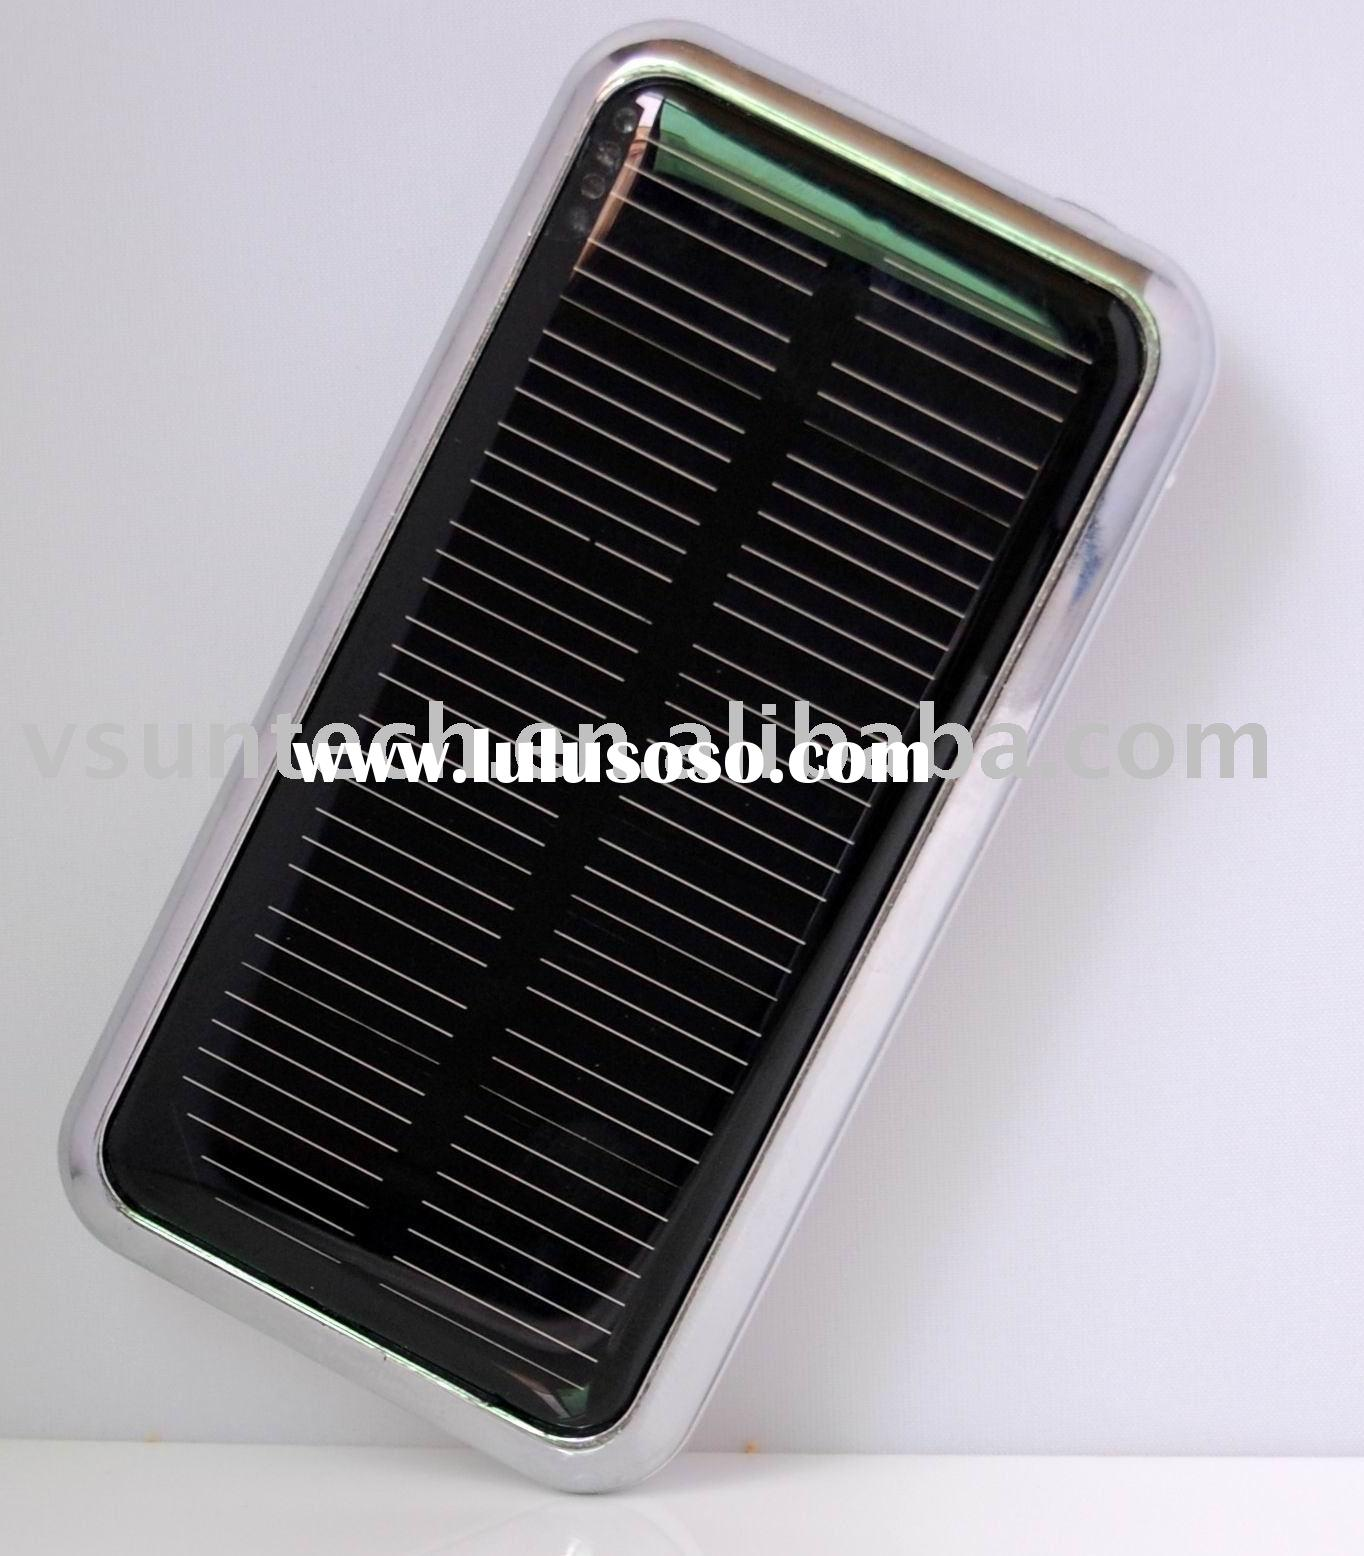 solar cell phone charger universal